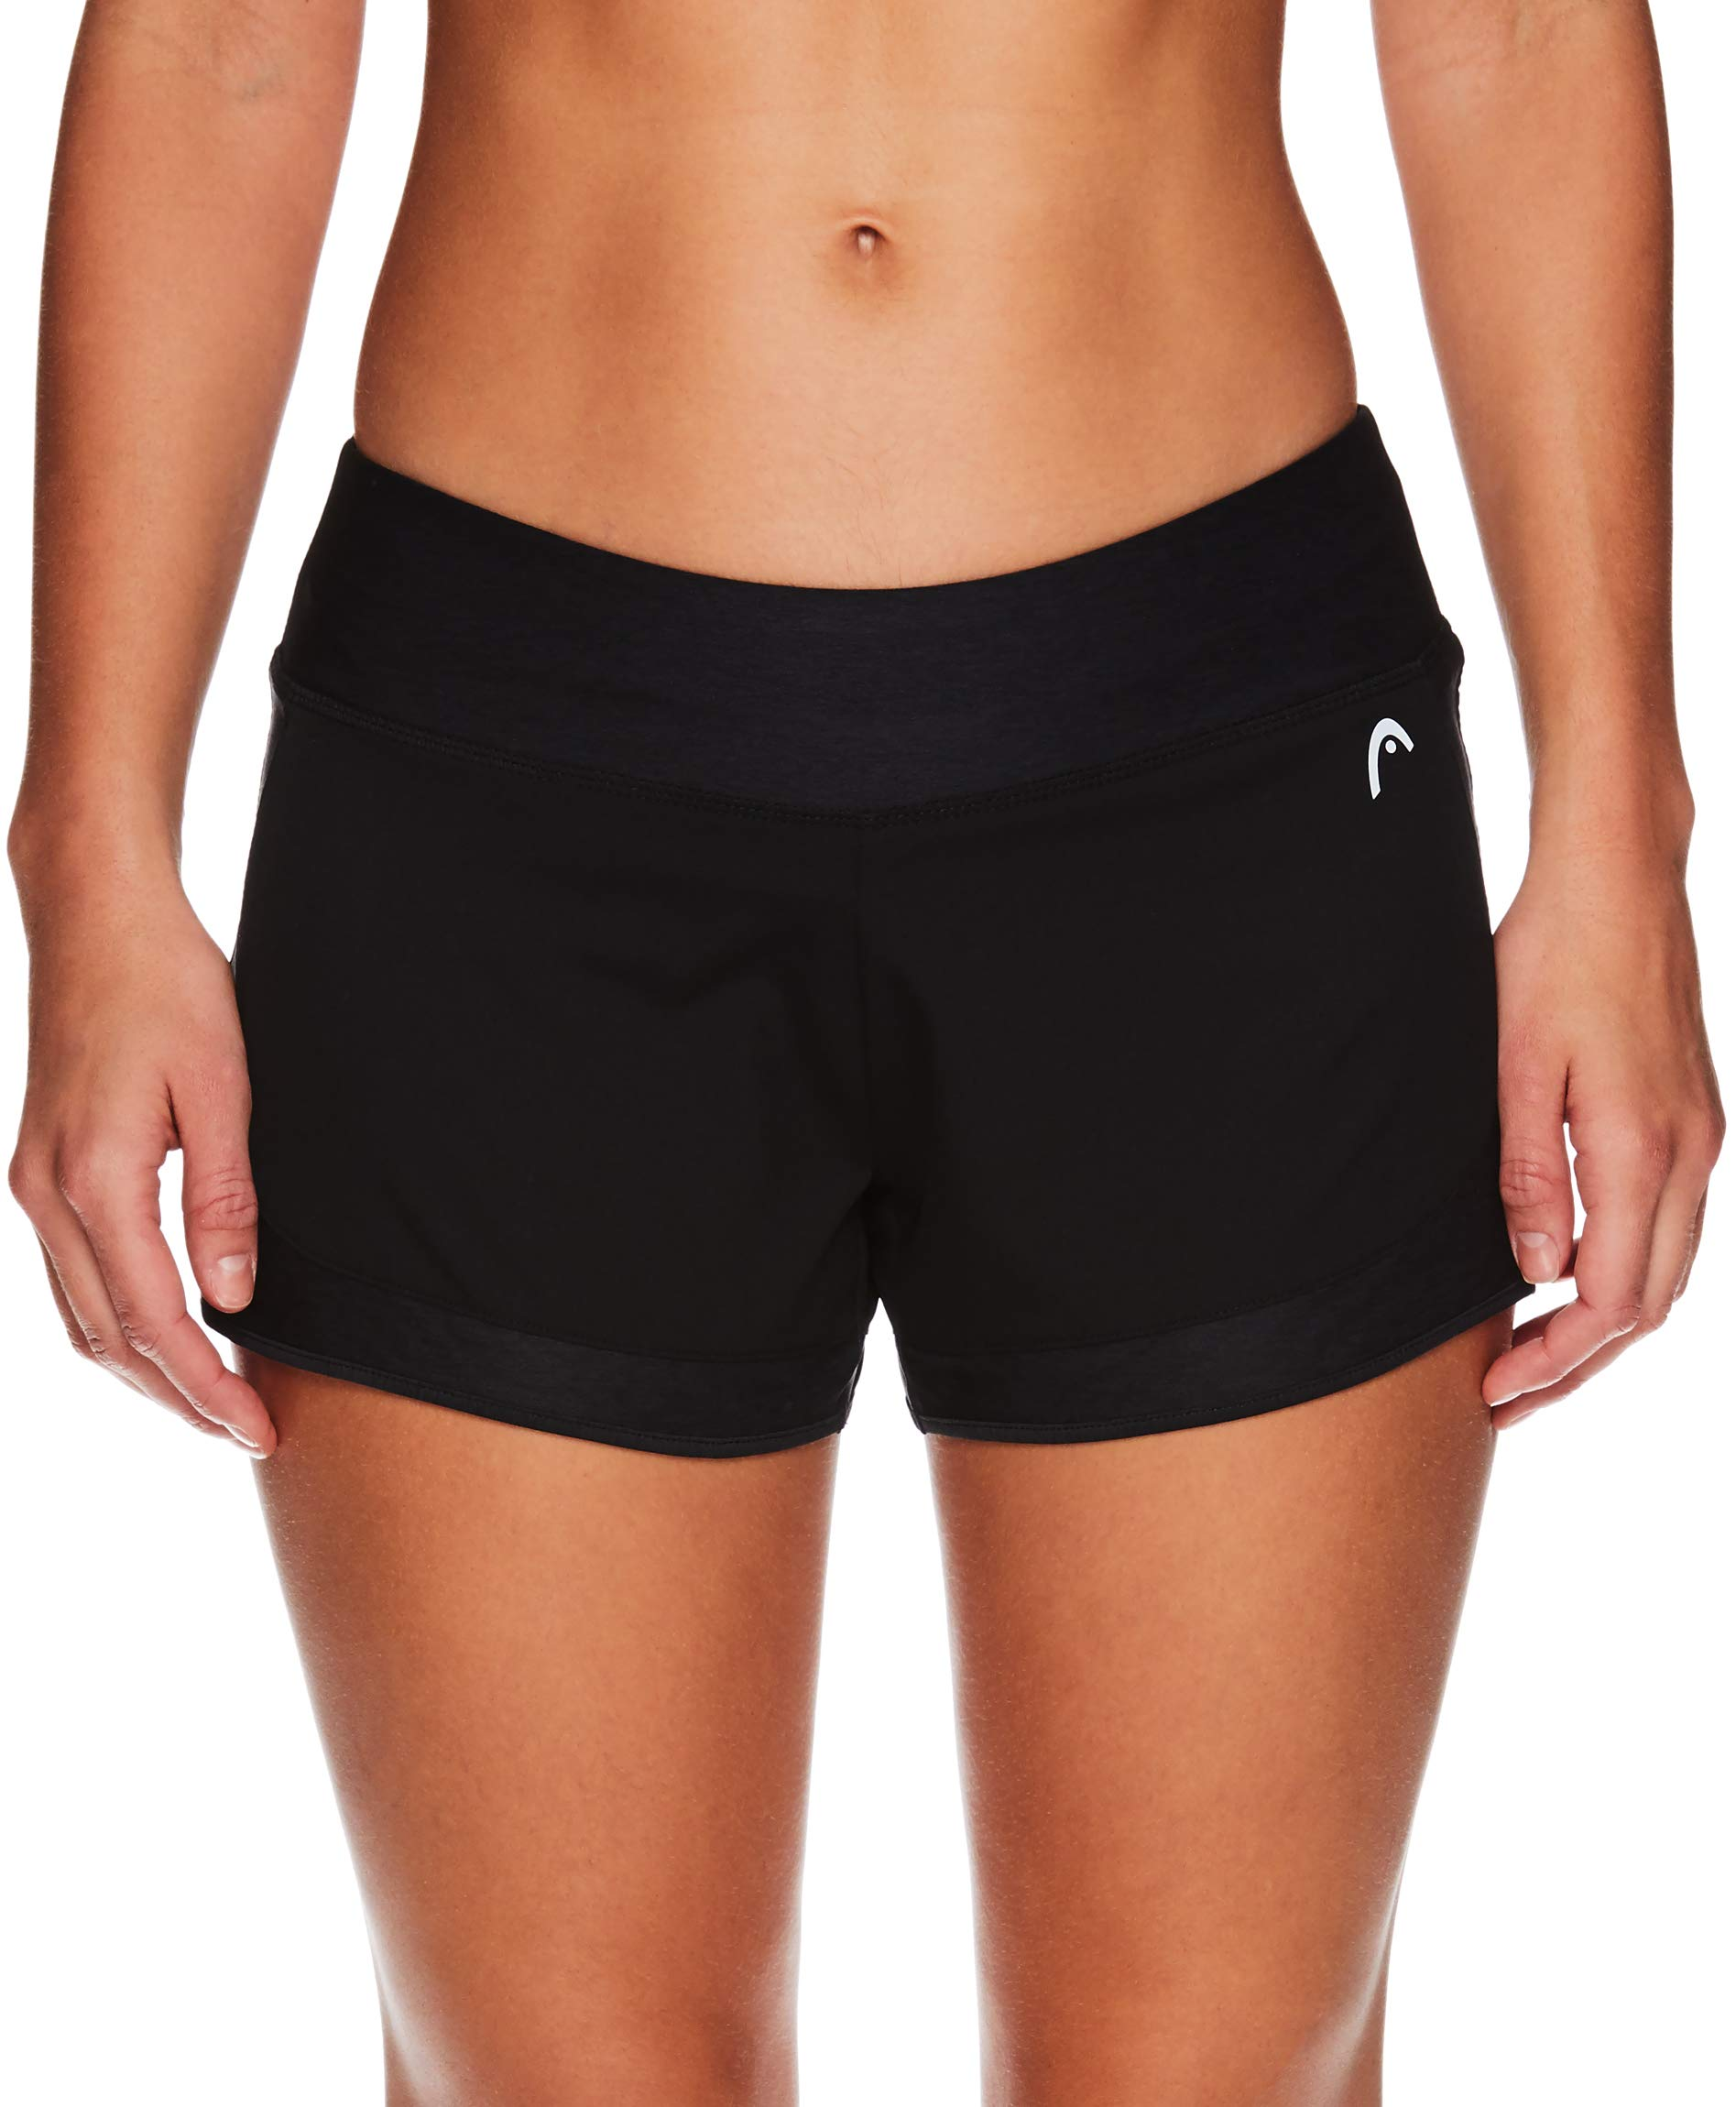 HEAD Women's Athletic Workout Shorts - Tennis Gym Training & Running Short - Steadfast with Brief Black, X-Small